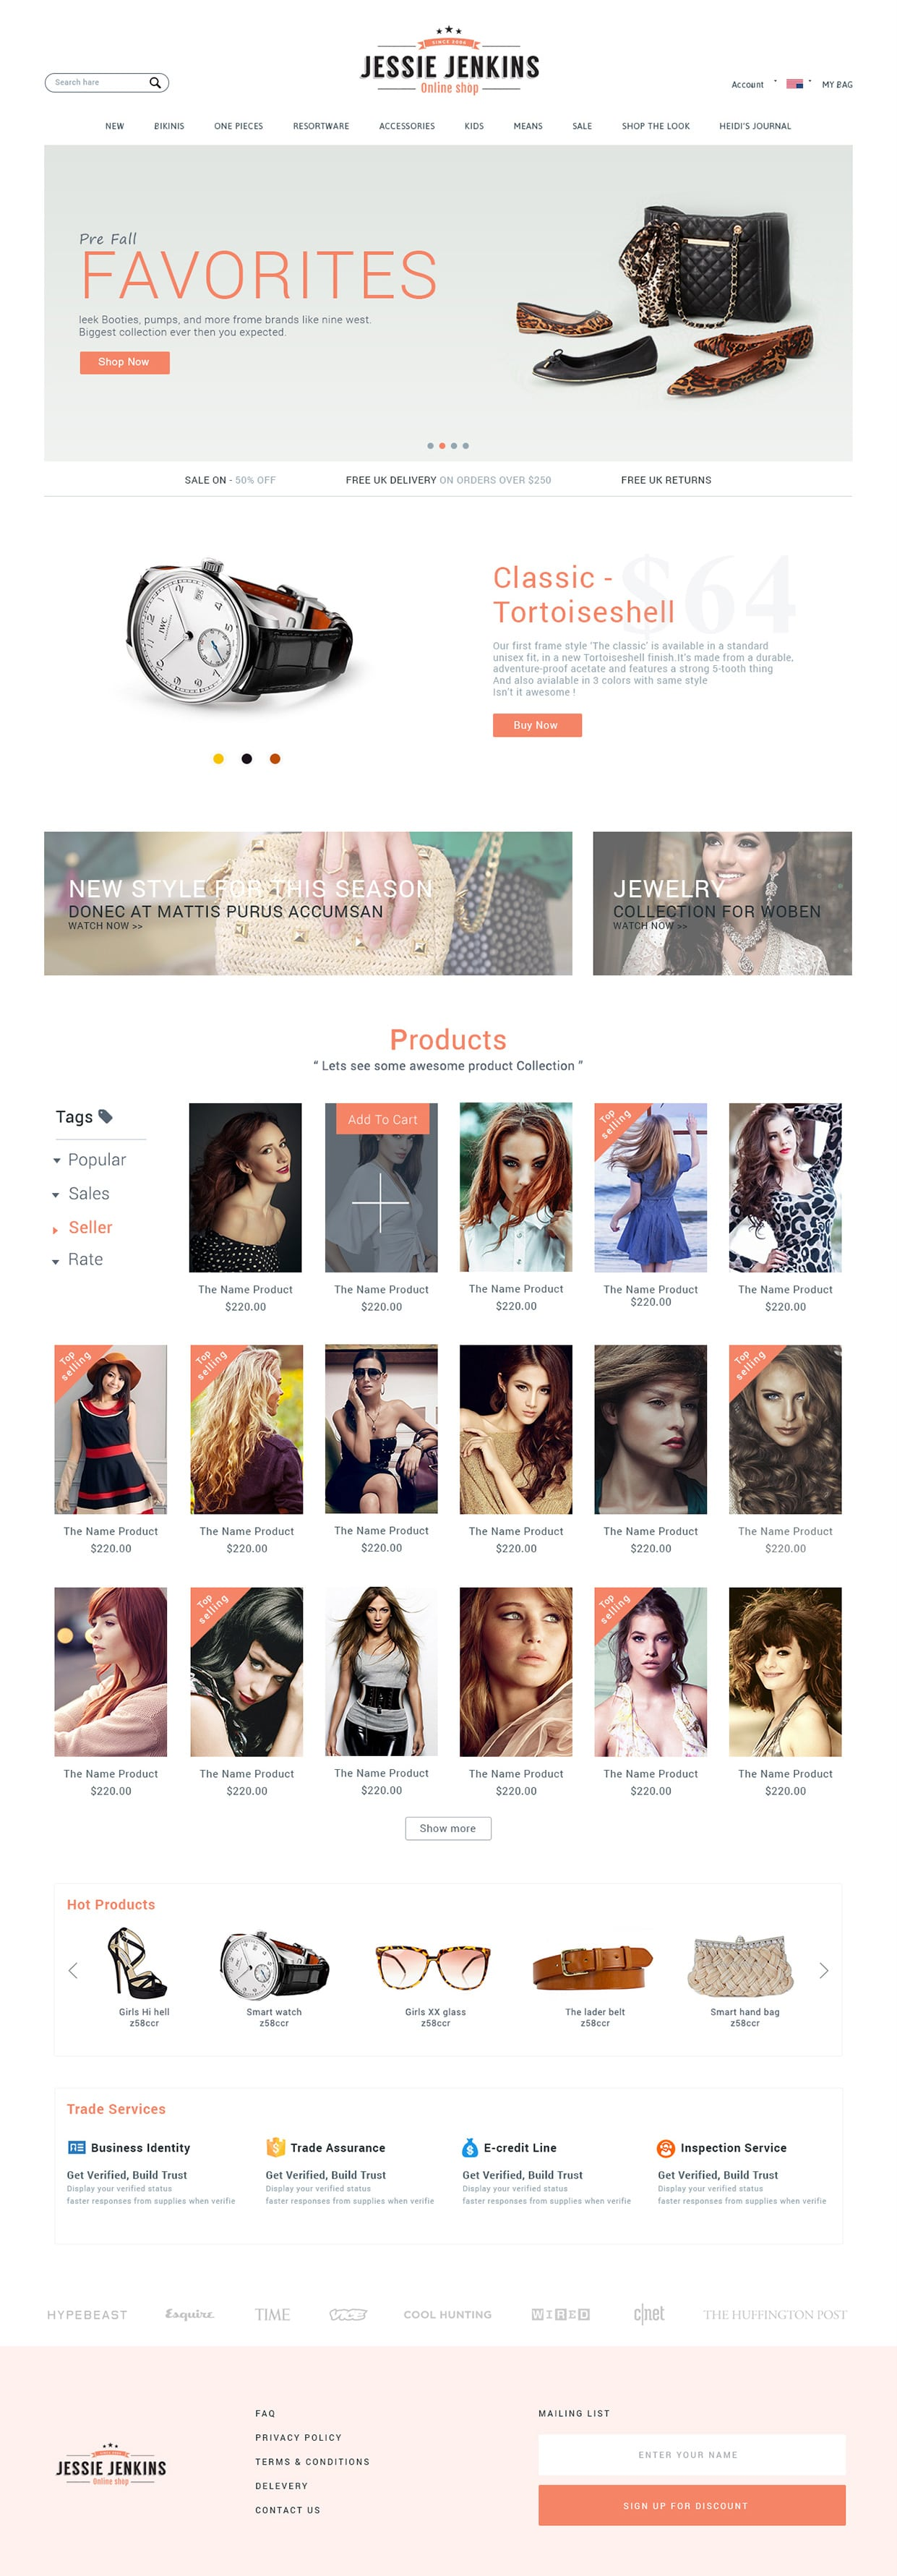 E Commerce Web UI Design Free PSD